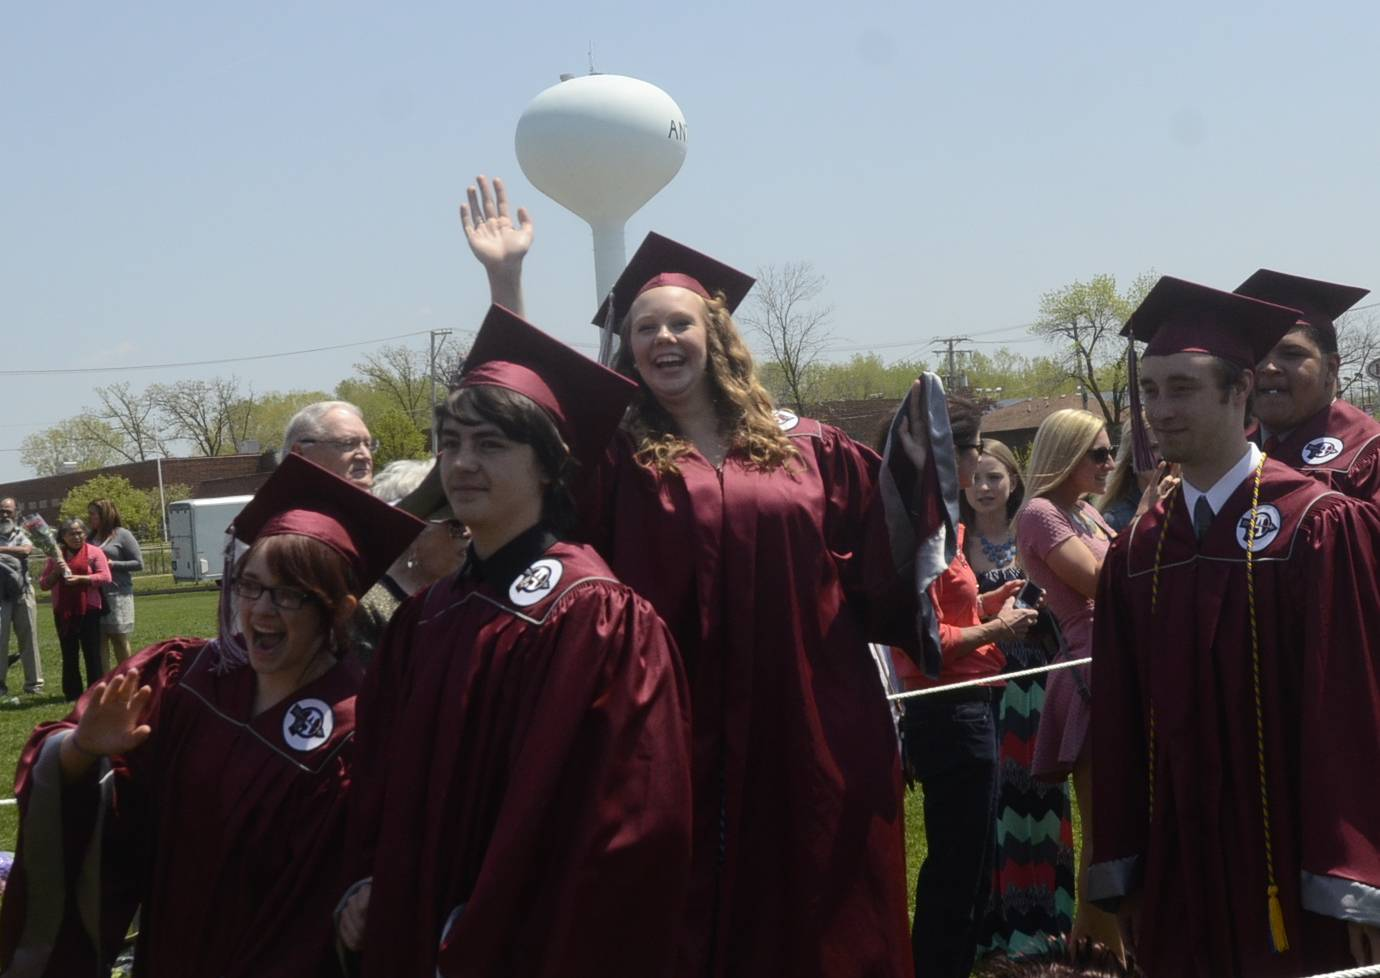 Images from the Antioch High School graduation on Sunday, May 18 in Antioch.